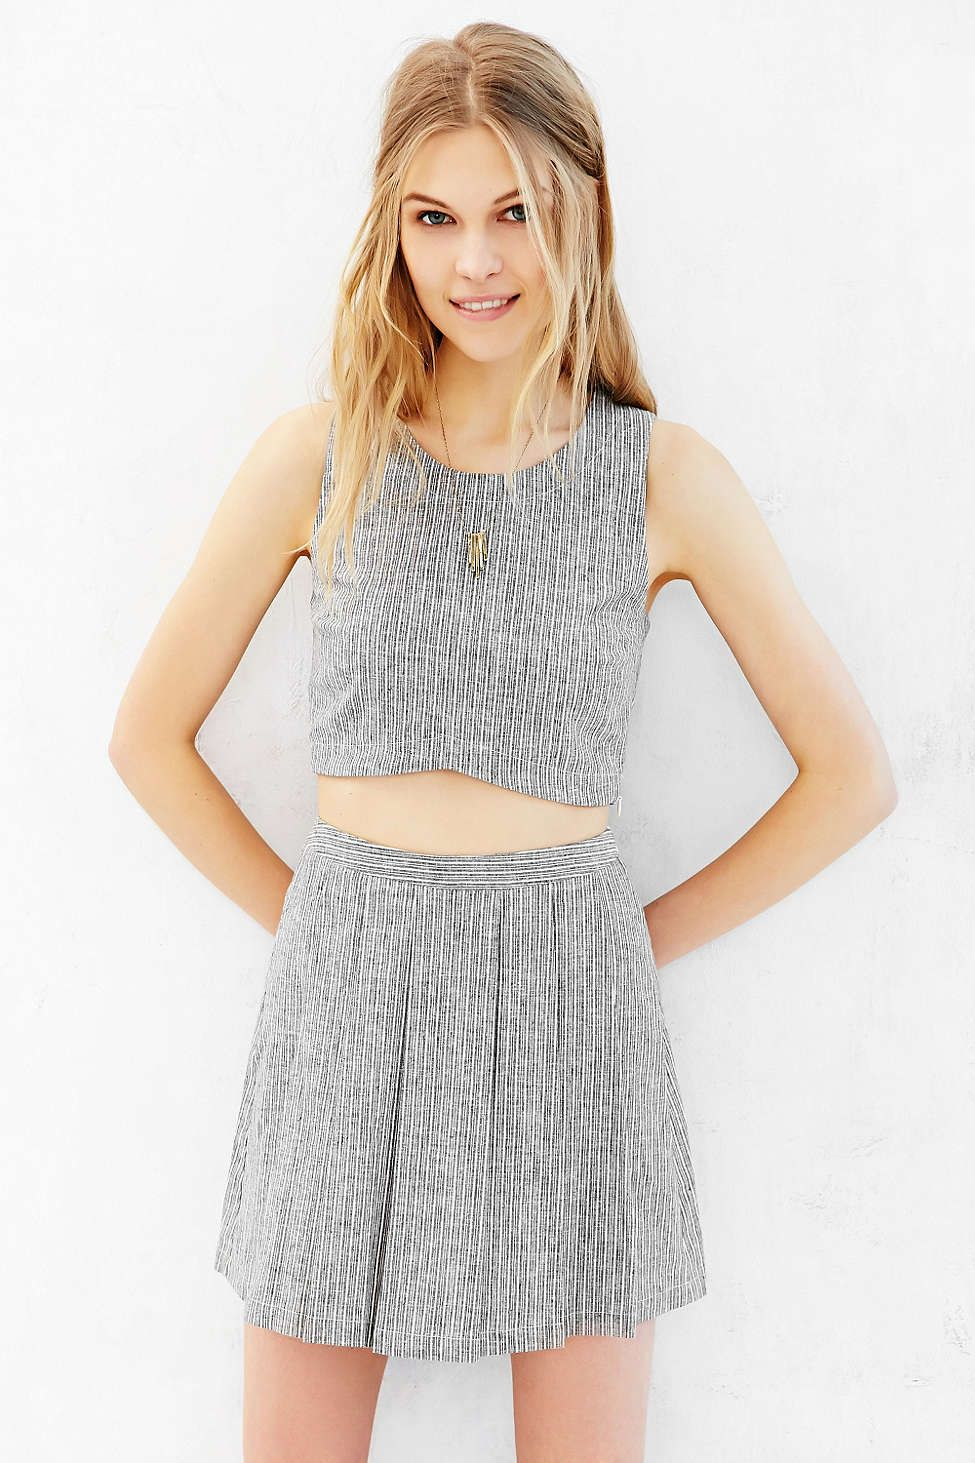 Nolitha Scalloped Cropped Top - Urban Outfitters